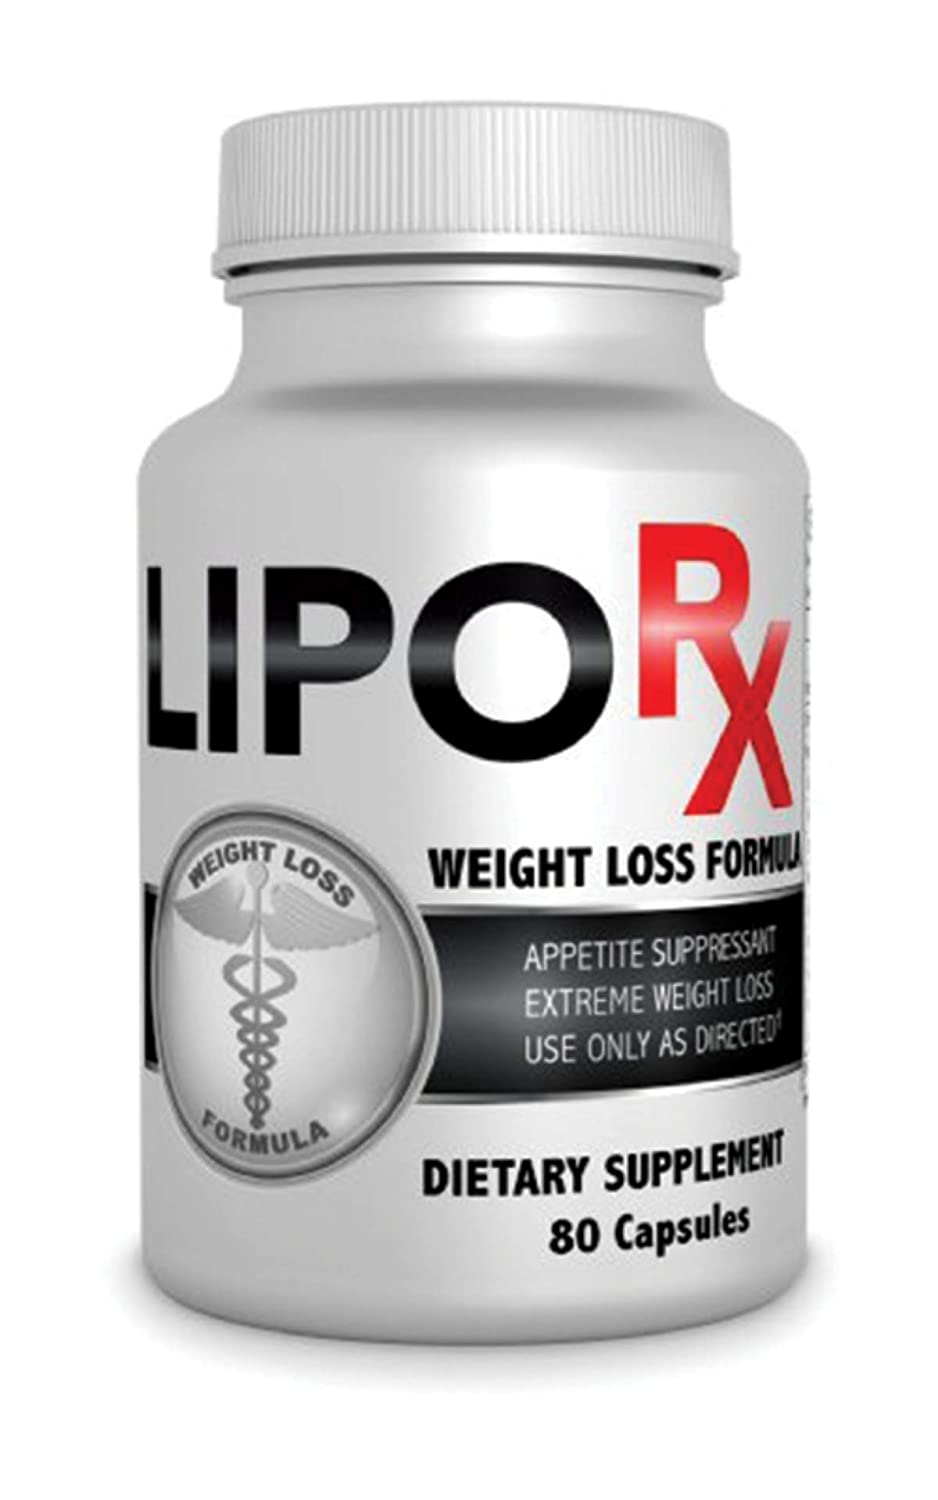 Lipo RX Extreme Diet Pills- Powerful Diet Supplement for Rapid Weight Loss- Formulated for Women and Men- Burn Fat Fast- 80 Capsule